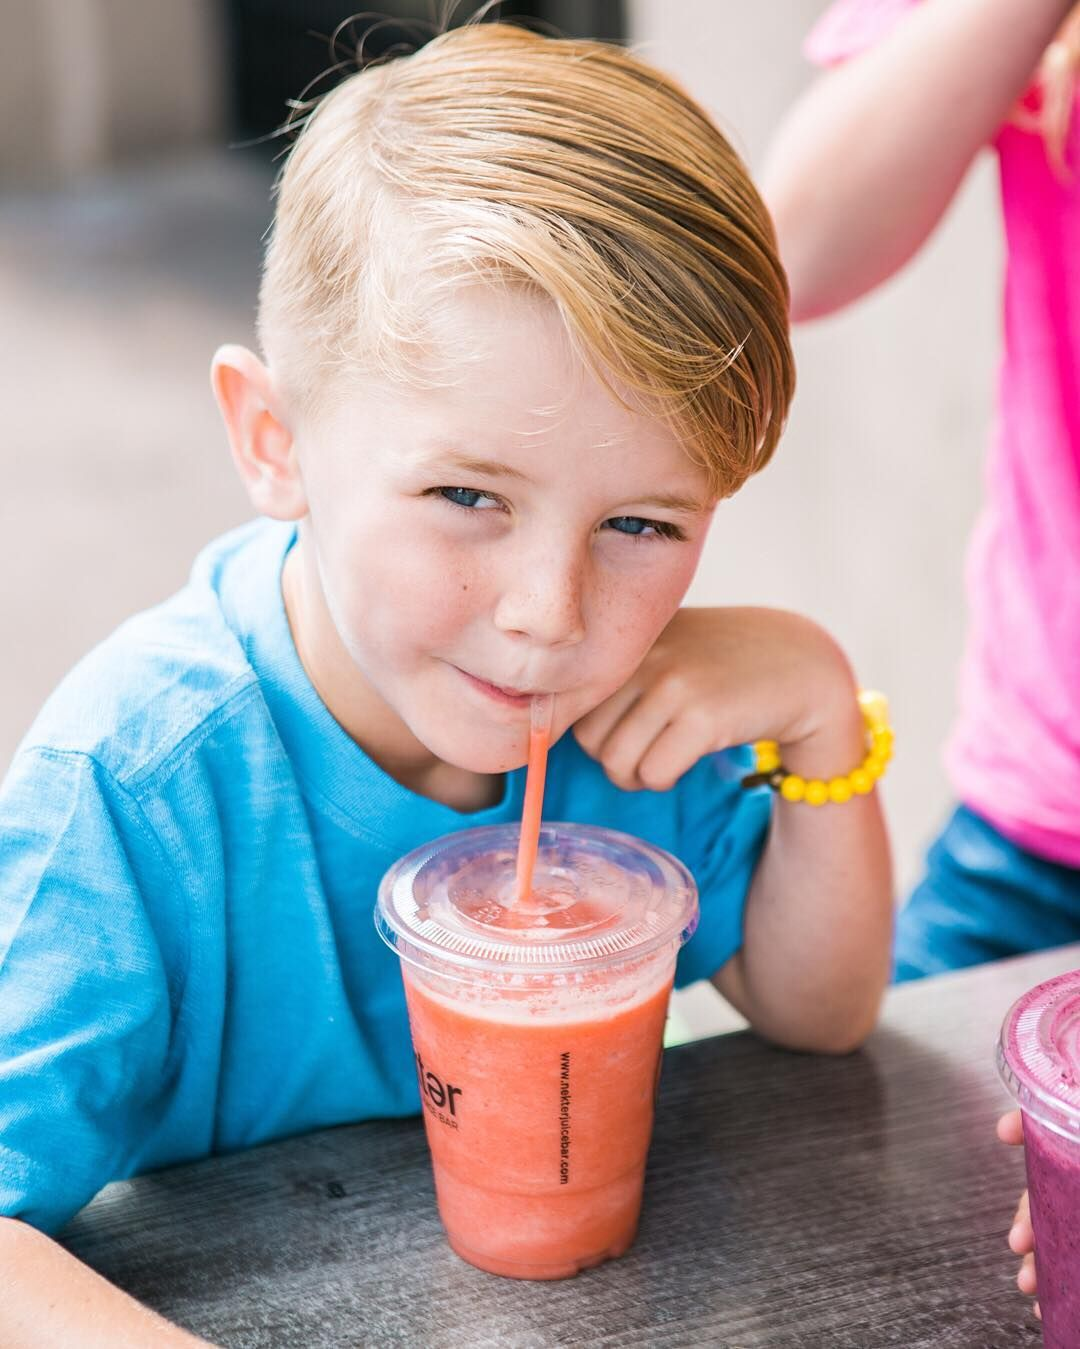 Afternoon snack breaks call for the Orange Crush!  It's great for boosting immunity & bone health plus they're a kid favorite. #livethenekterlife